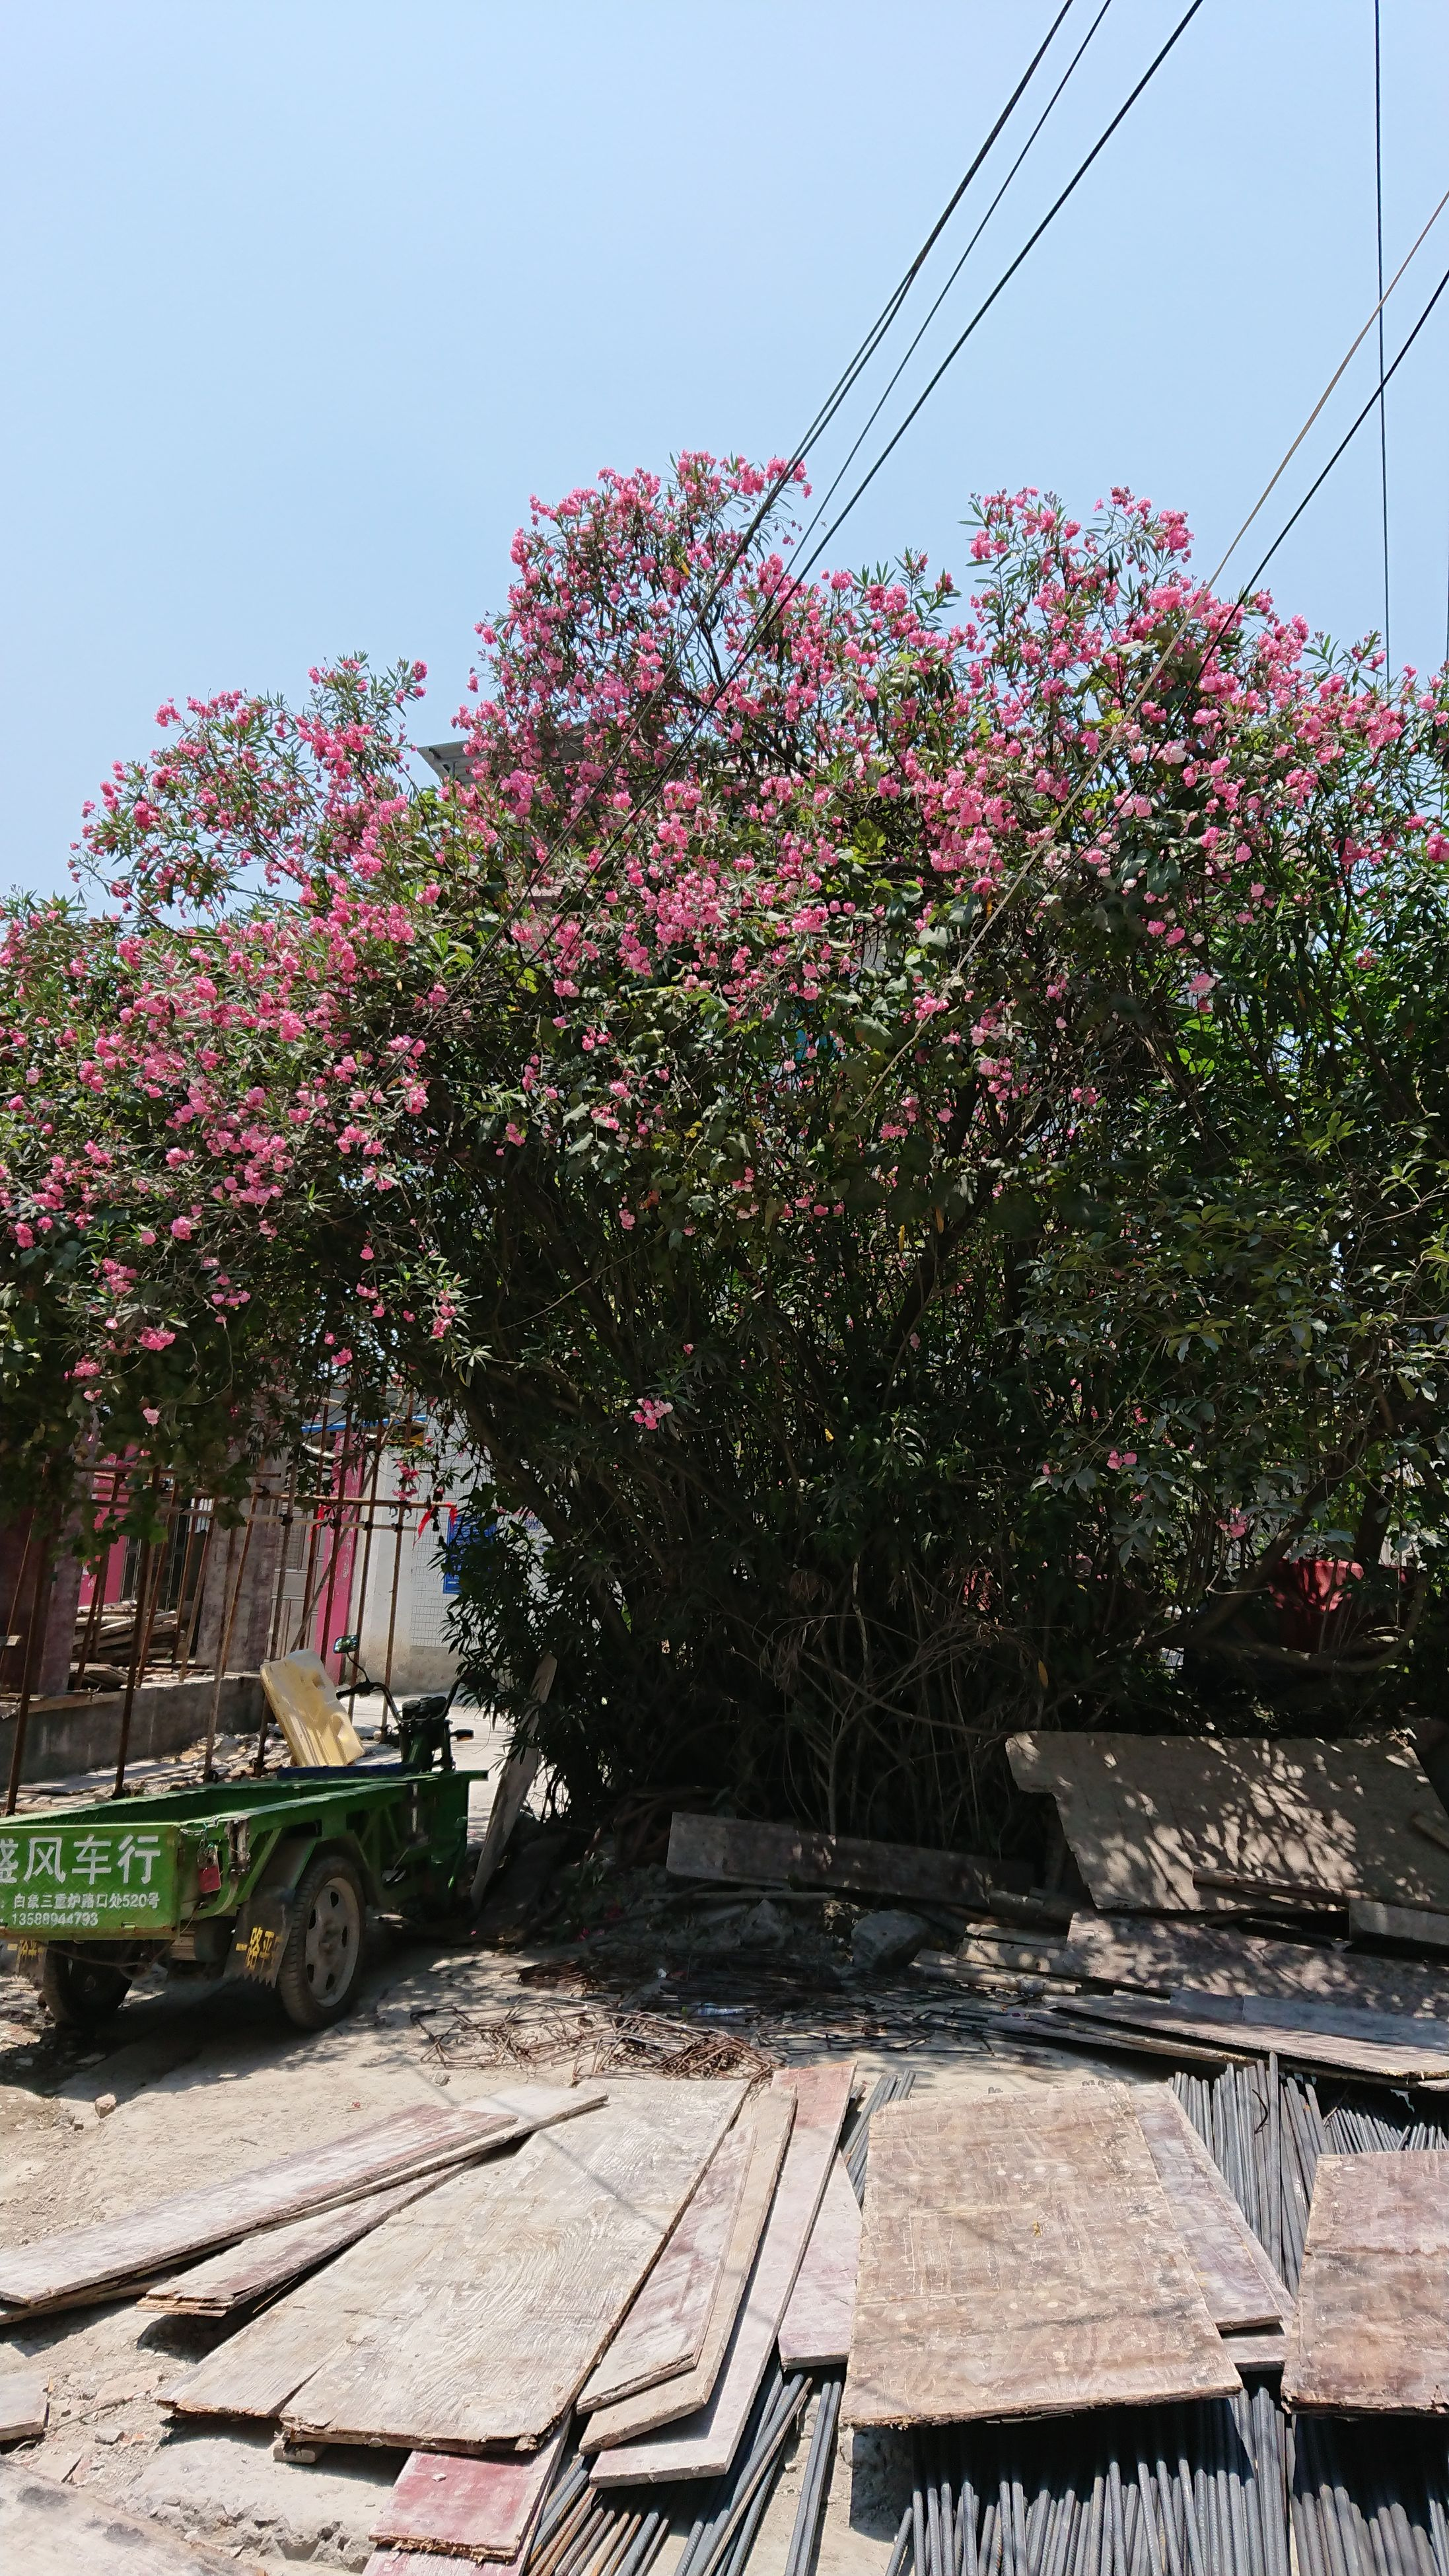 growth, no people, day, tree, flower, transportation, nature, outdoors, beauty in nature, clear sky, fragility, freshness, sky